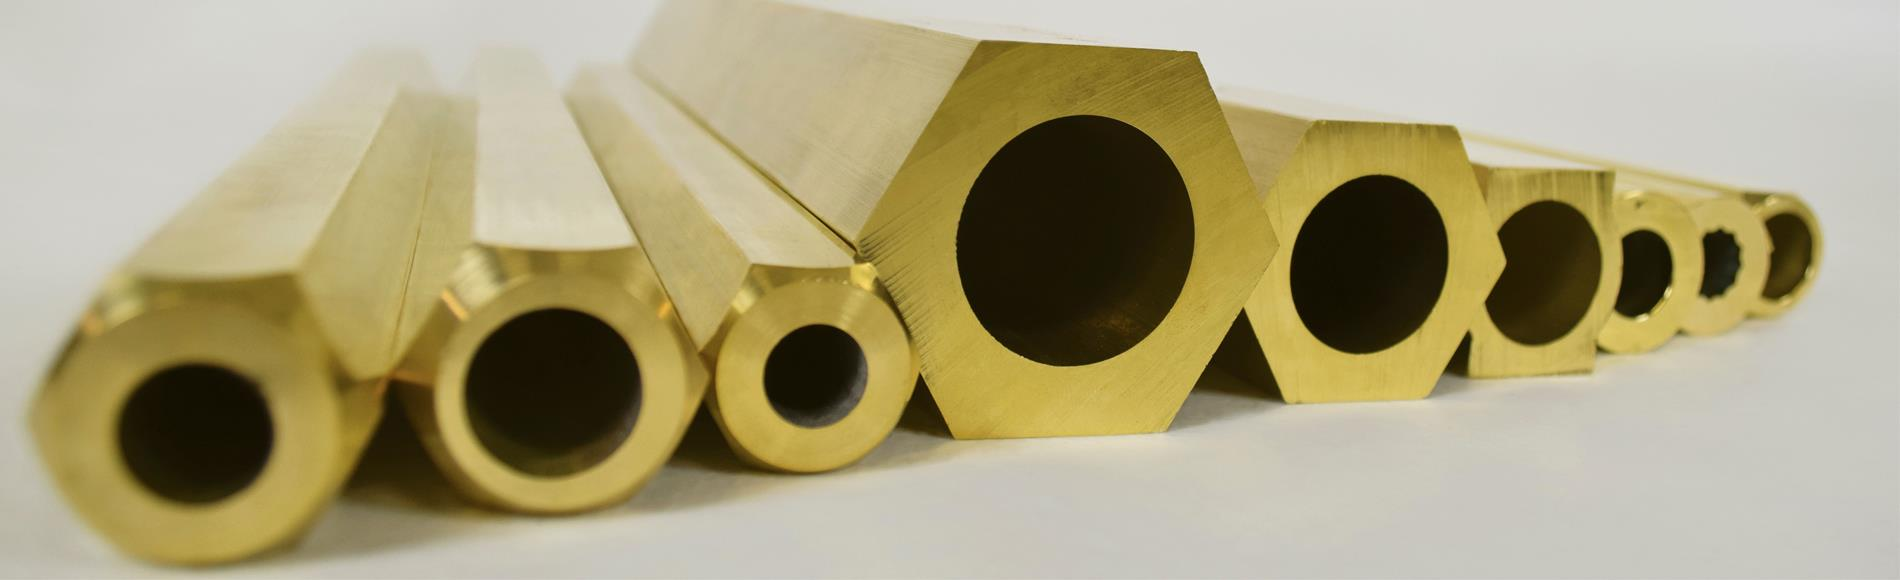 http://www.fitco.gr/userfiles/45aad4a2-7fba-4093-8a2a-a6de00bc5a0a/Hollow-Brass-Rods.jpg?quality=75&w=1900